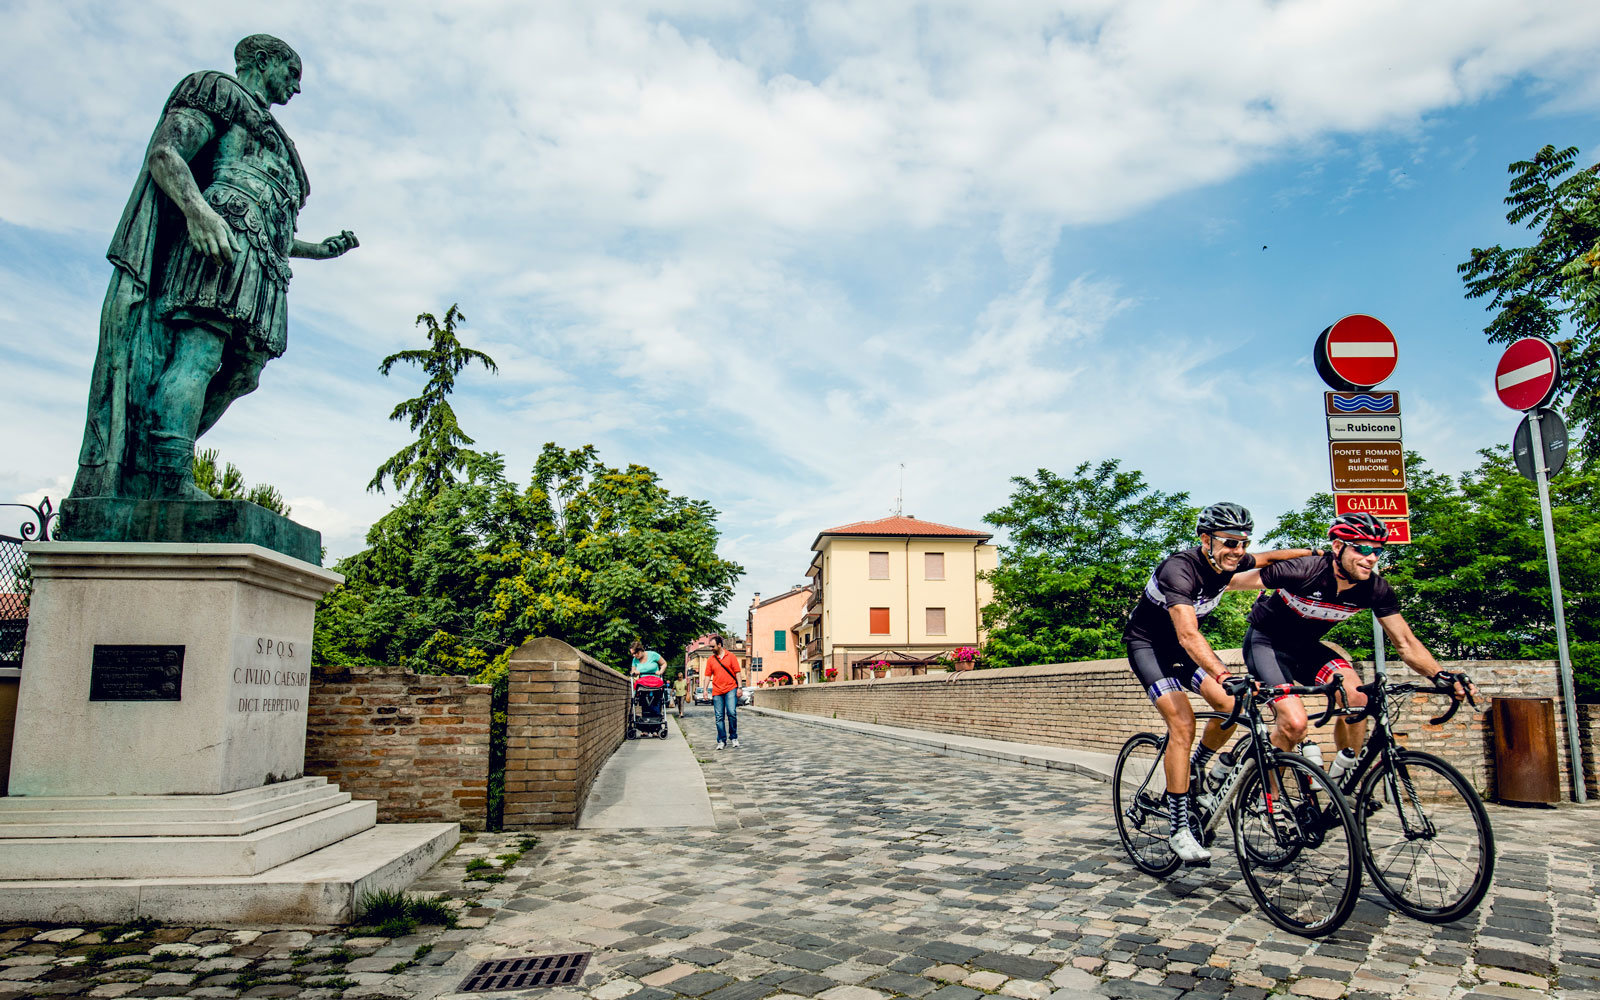 This month-long bike trip traces Caesar's footsteps.